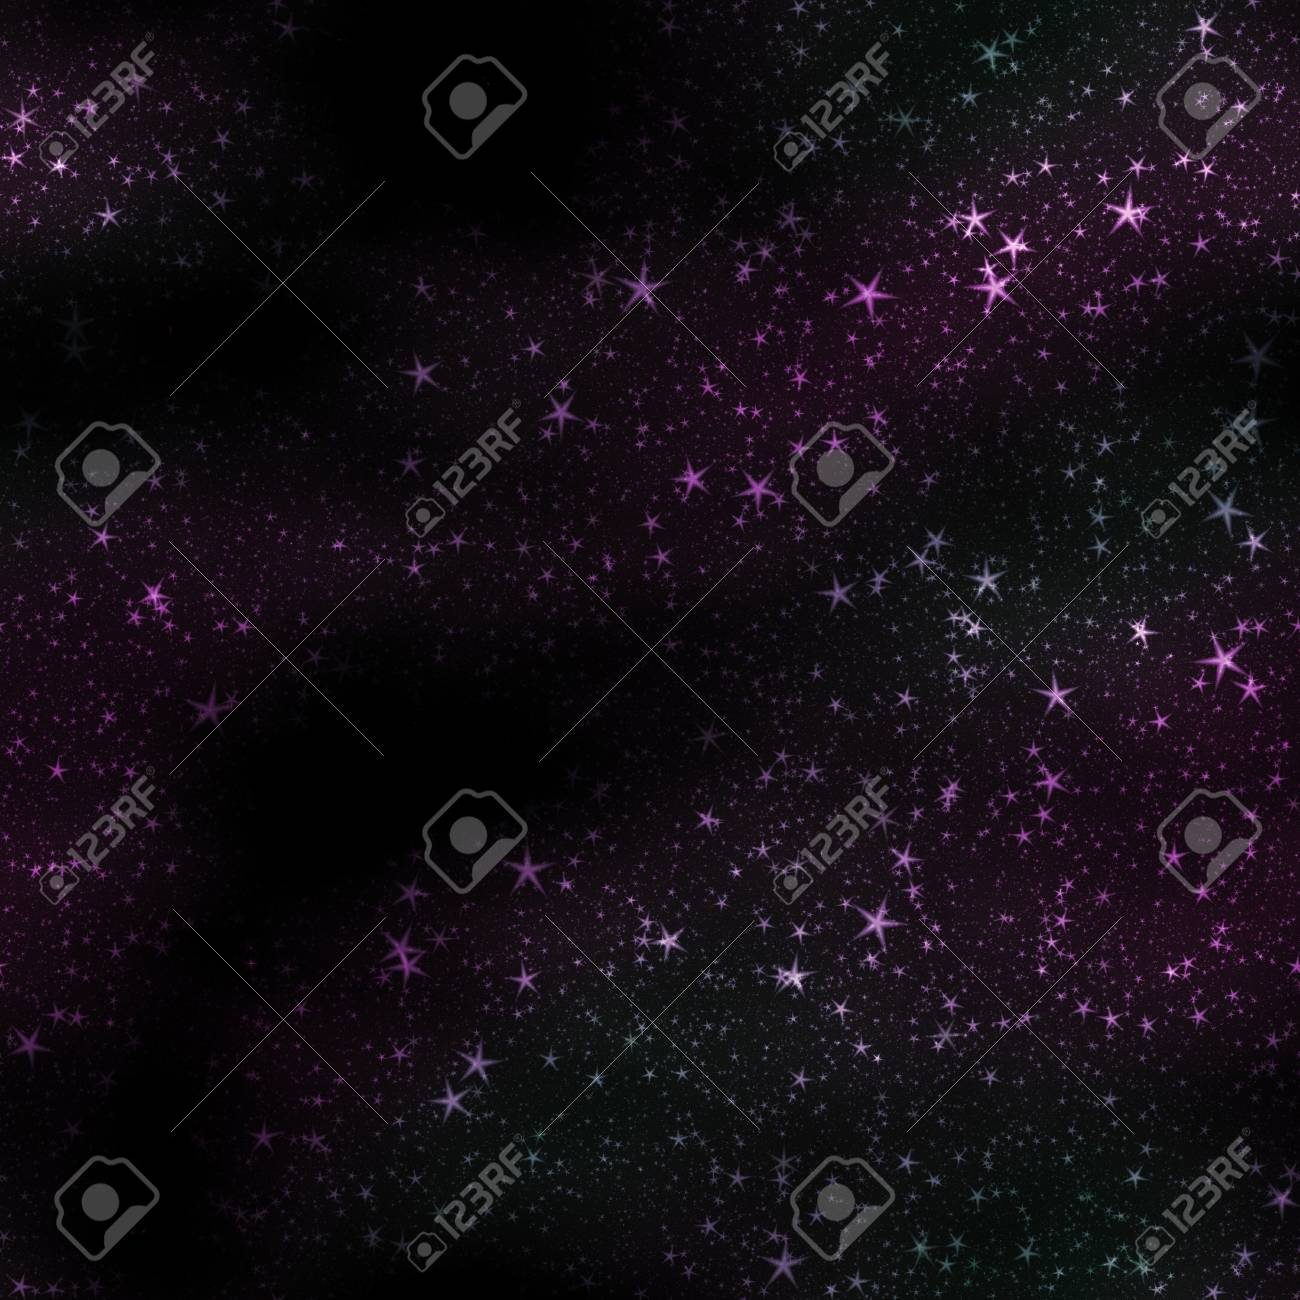 Star field in space and gas congestion background. Stock Photo - 20073927